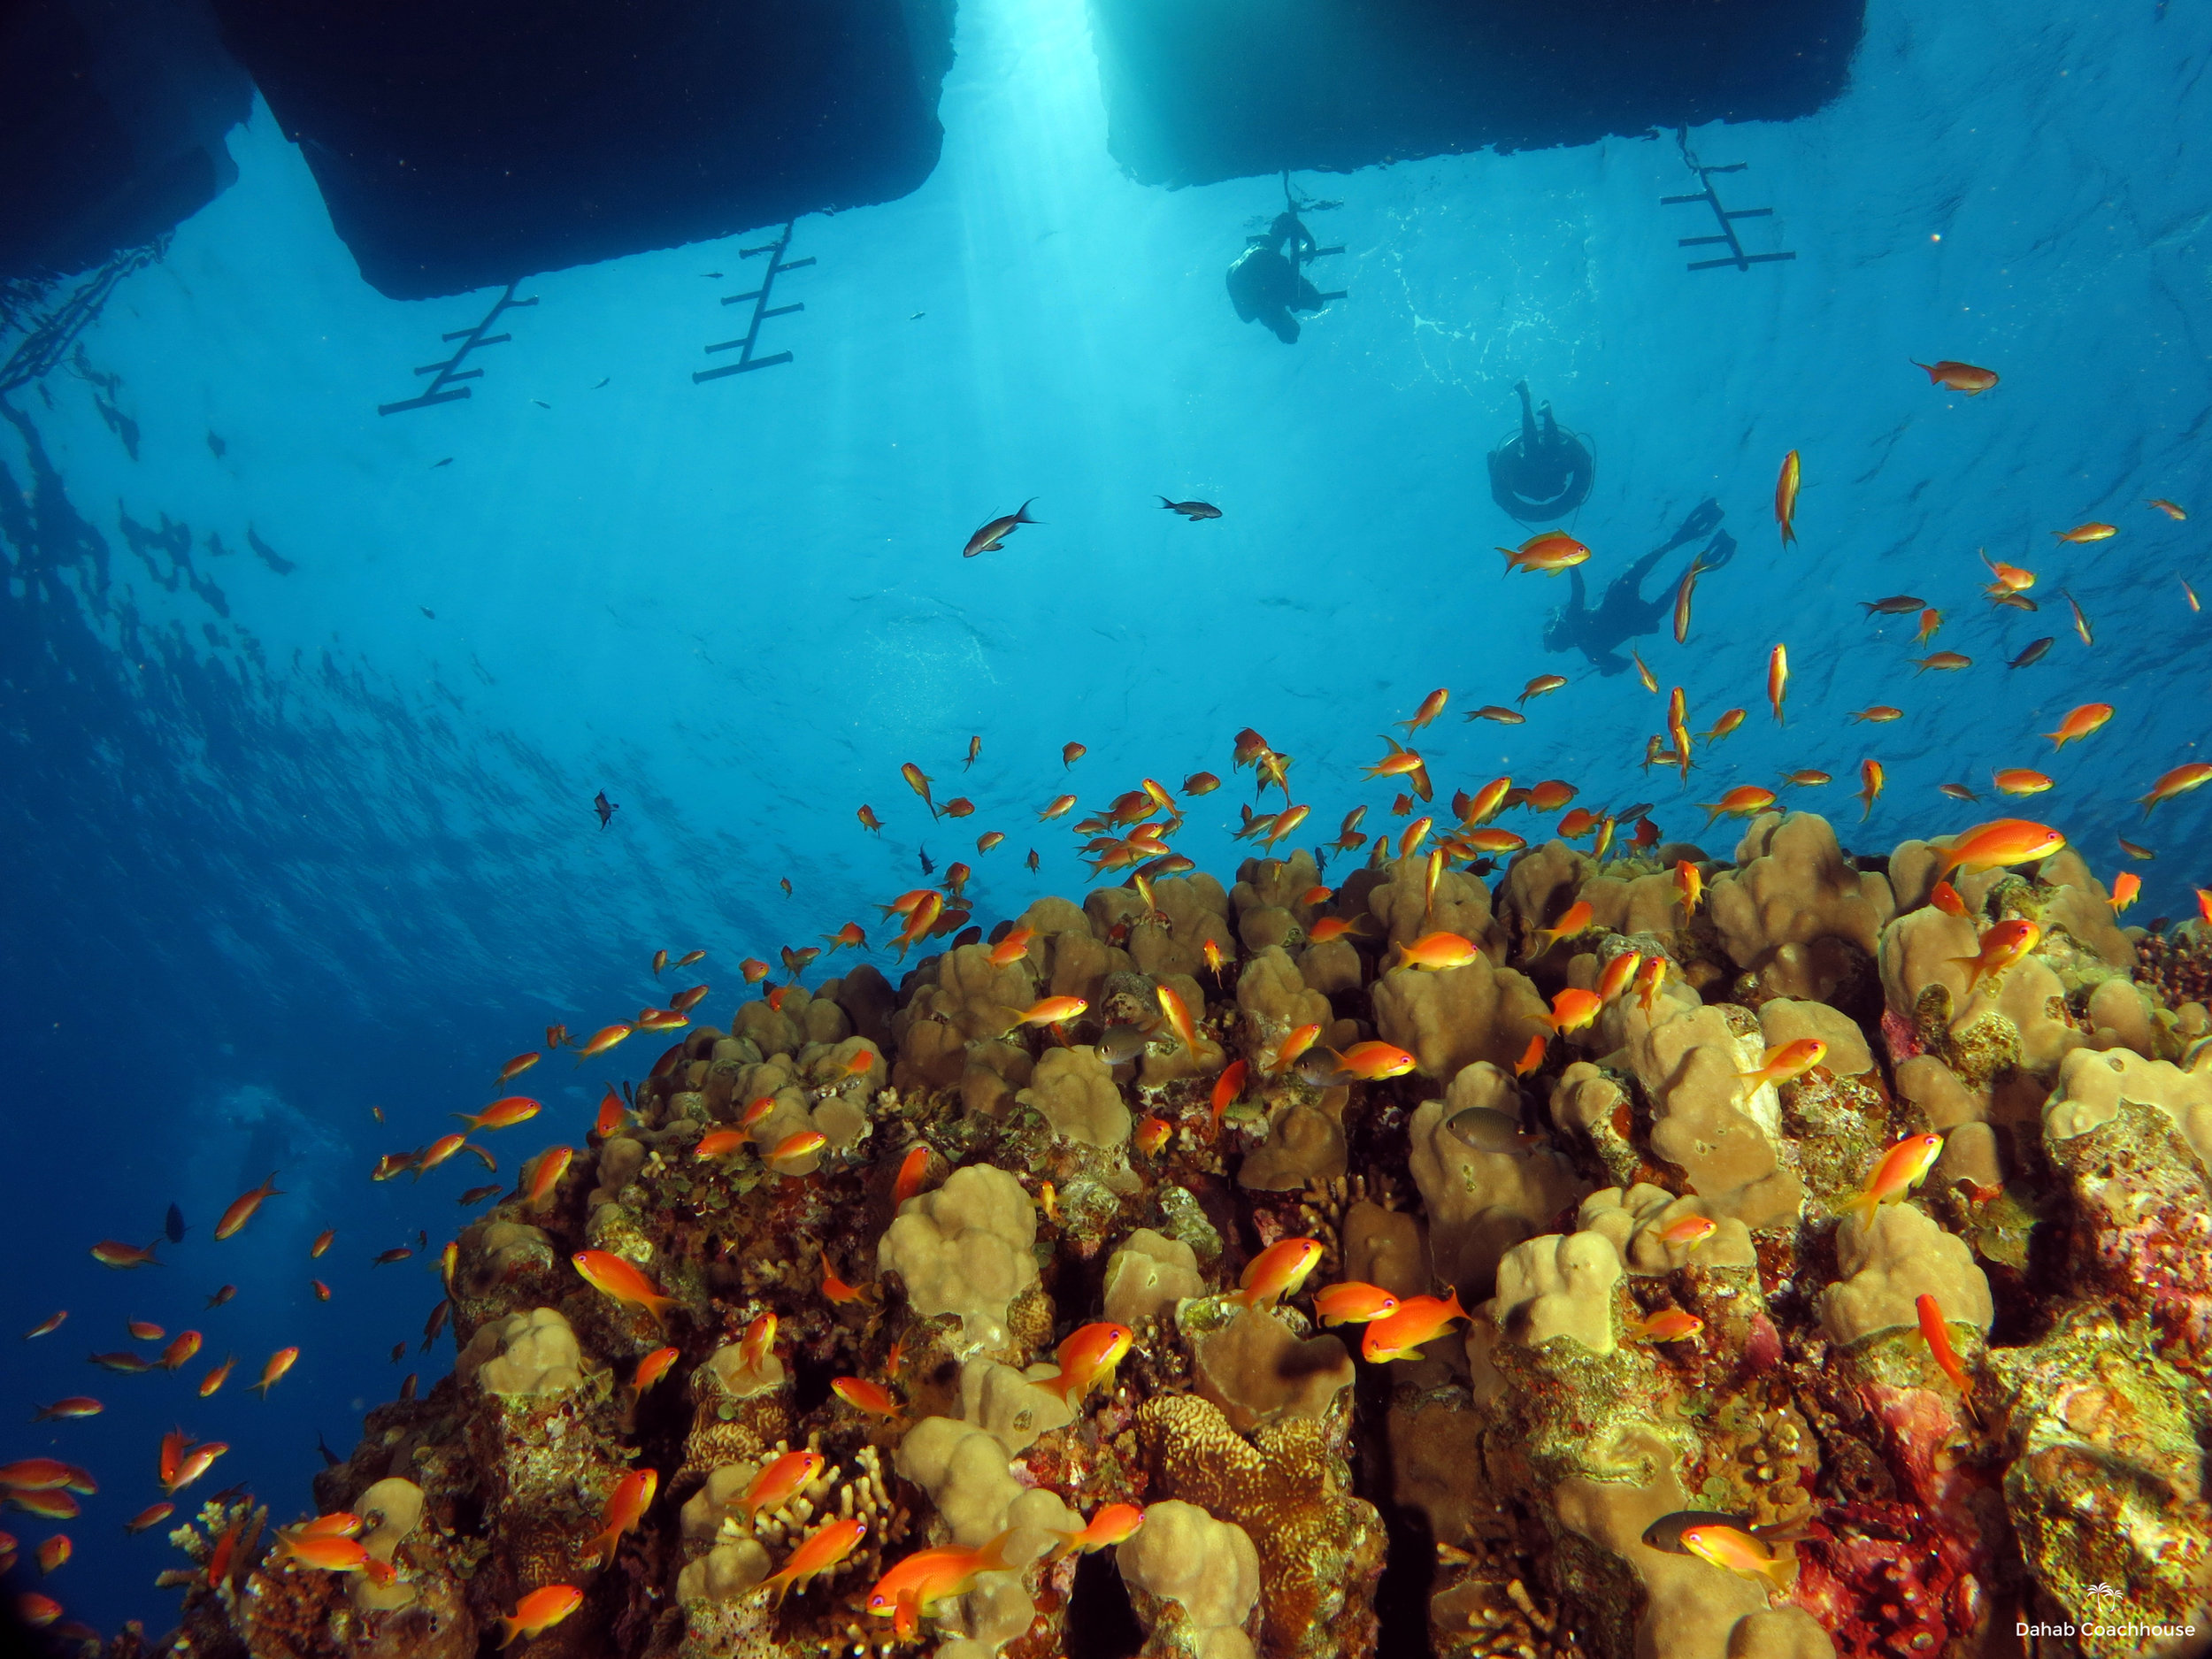 Dahab_Coachhouse_Egypt_Red_Sea_Diving_Beach_Accommodation_Holiday_Trave_Boat.JPG